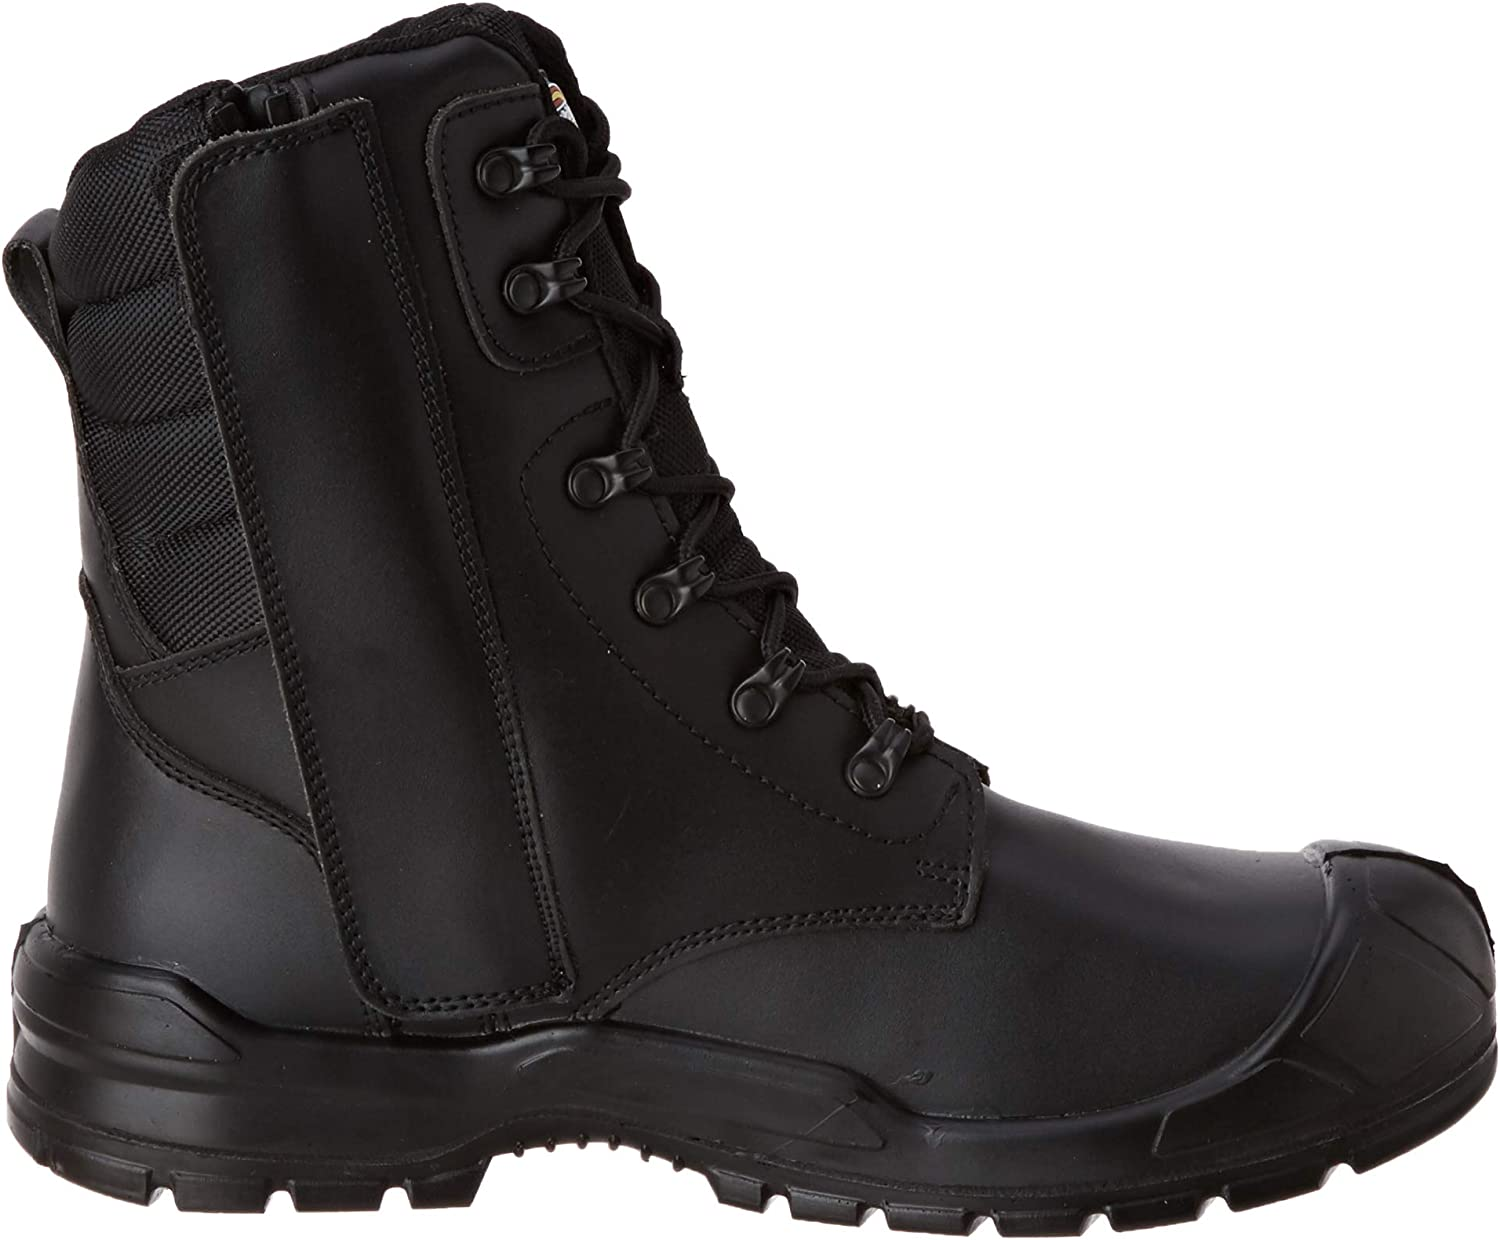 Dickies Trenton Pro Safety Combat Boots Mens Waterproof Steel Toe Cap Shoes